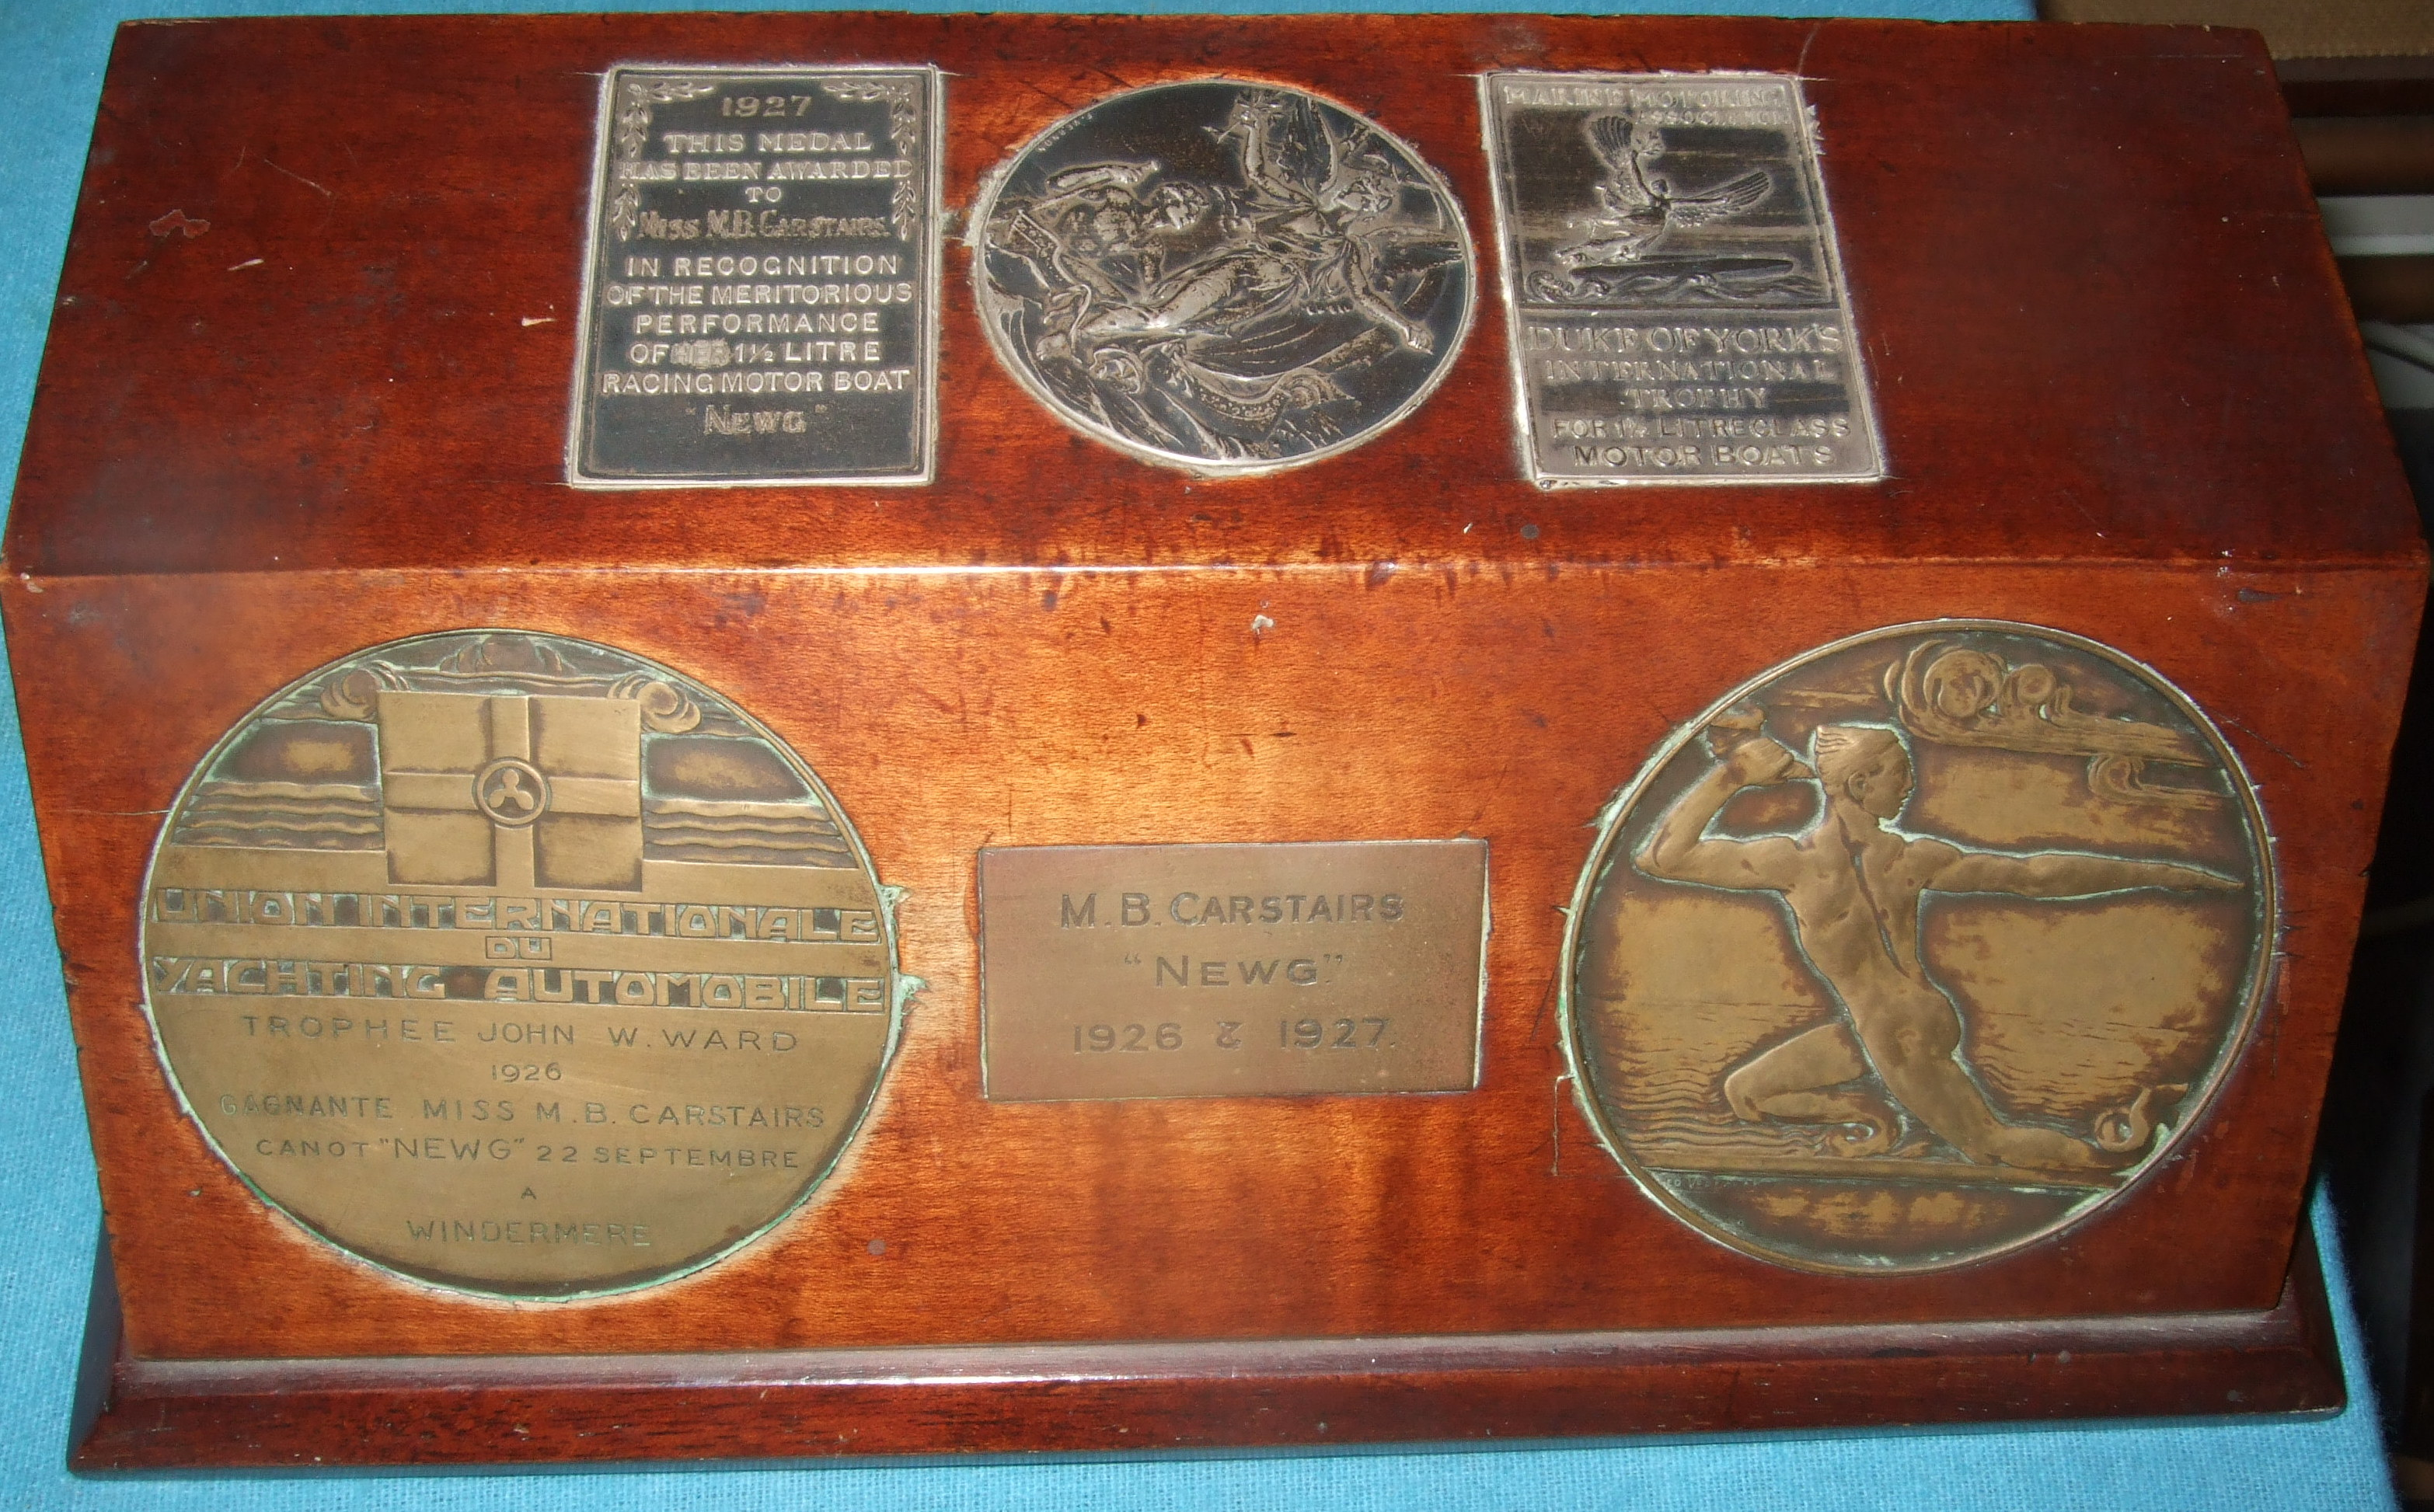 NEWG, Trophies won  1926 Windemere, and '27